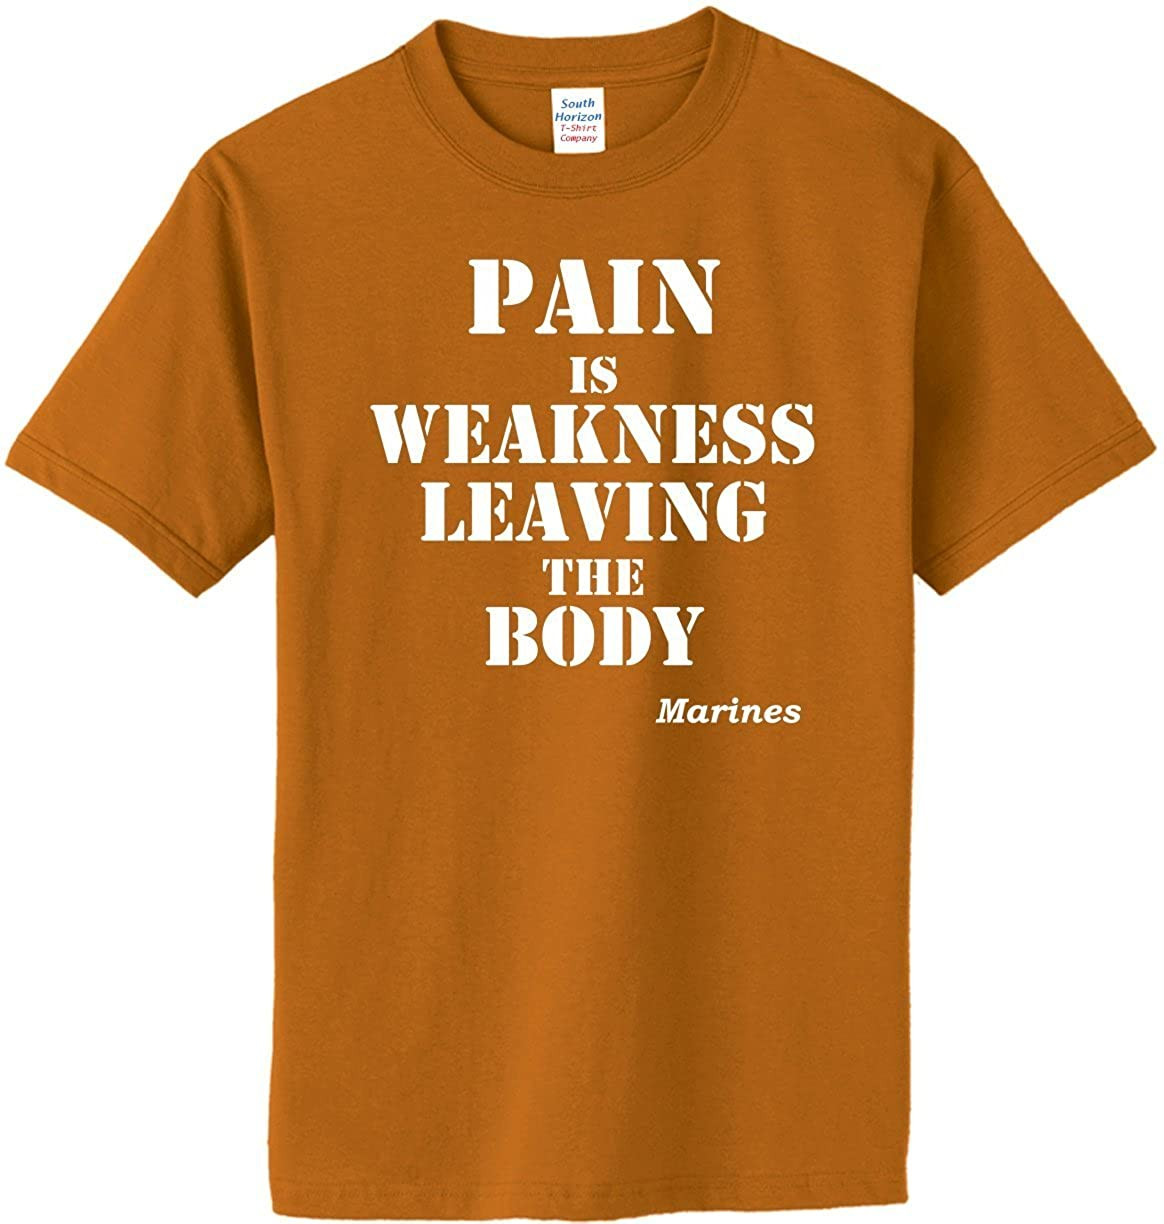 Amazon.com  Pain Is Weakness Leaving The Body - Marines on Adult   Youth  Cotton T-Shirt (in 26 colors)  Clothing e2a25b0d71